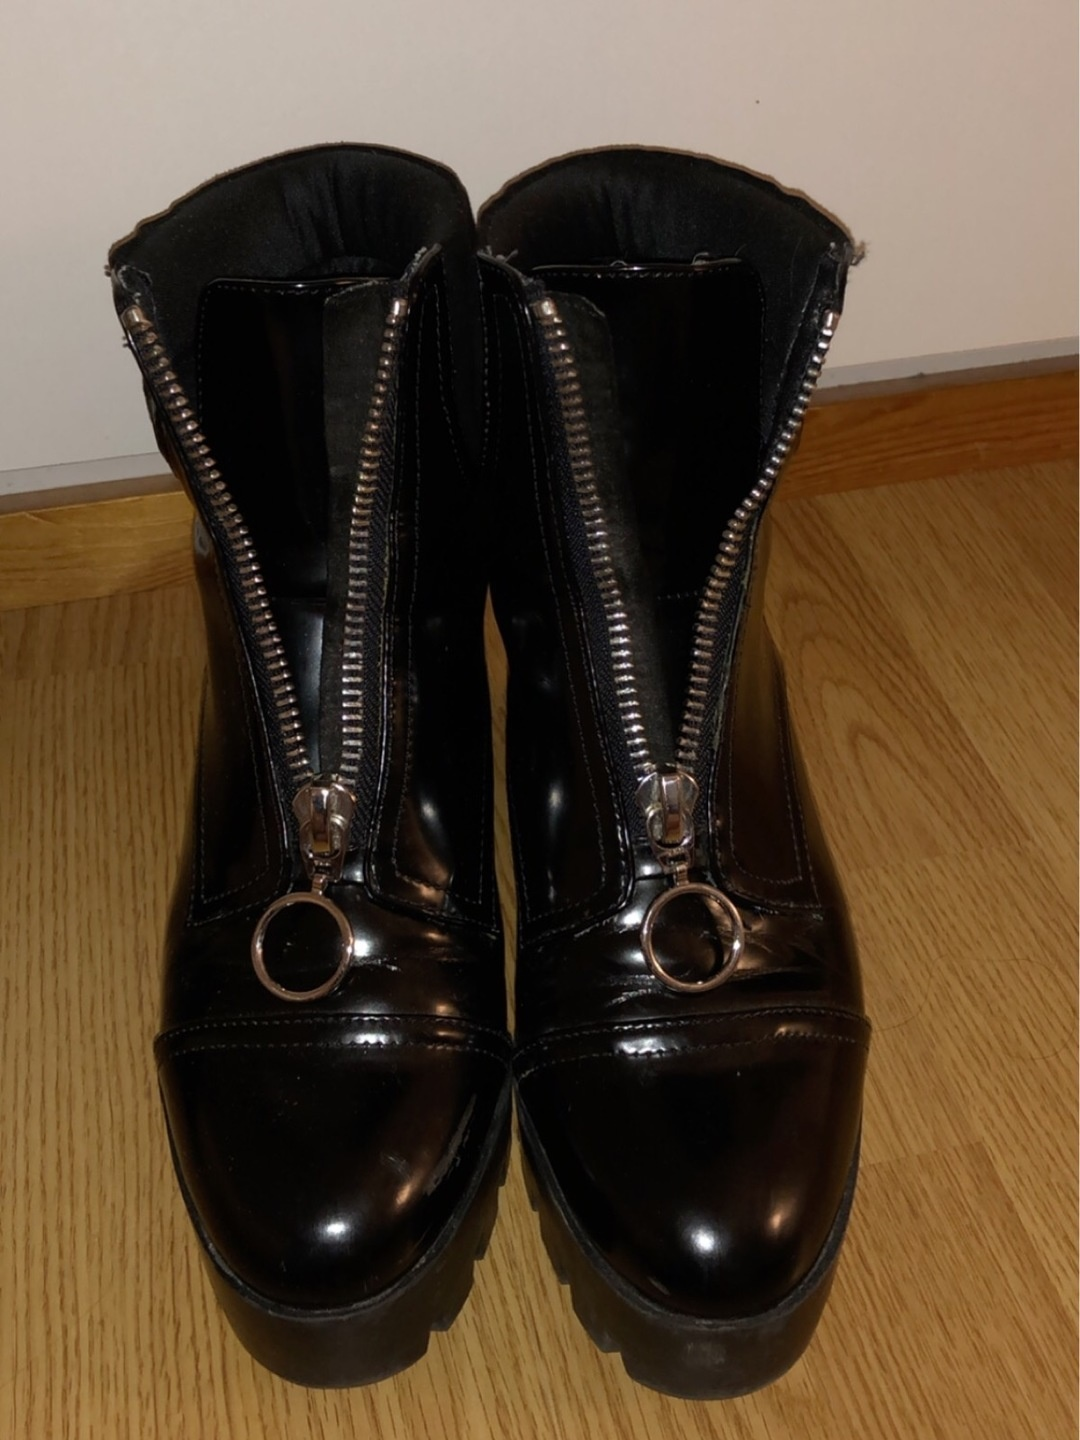 Women's boots - RIVER ISLAND photo 2